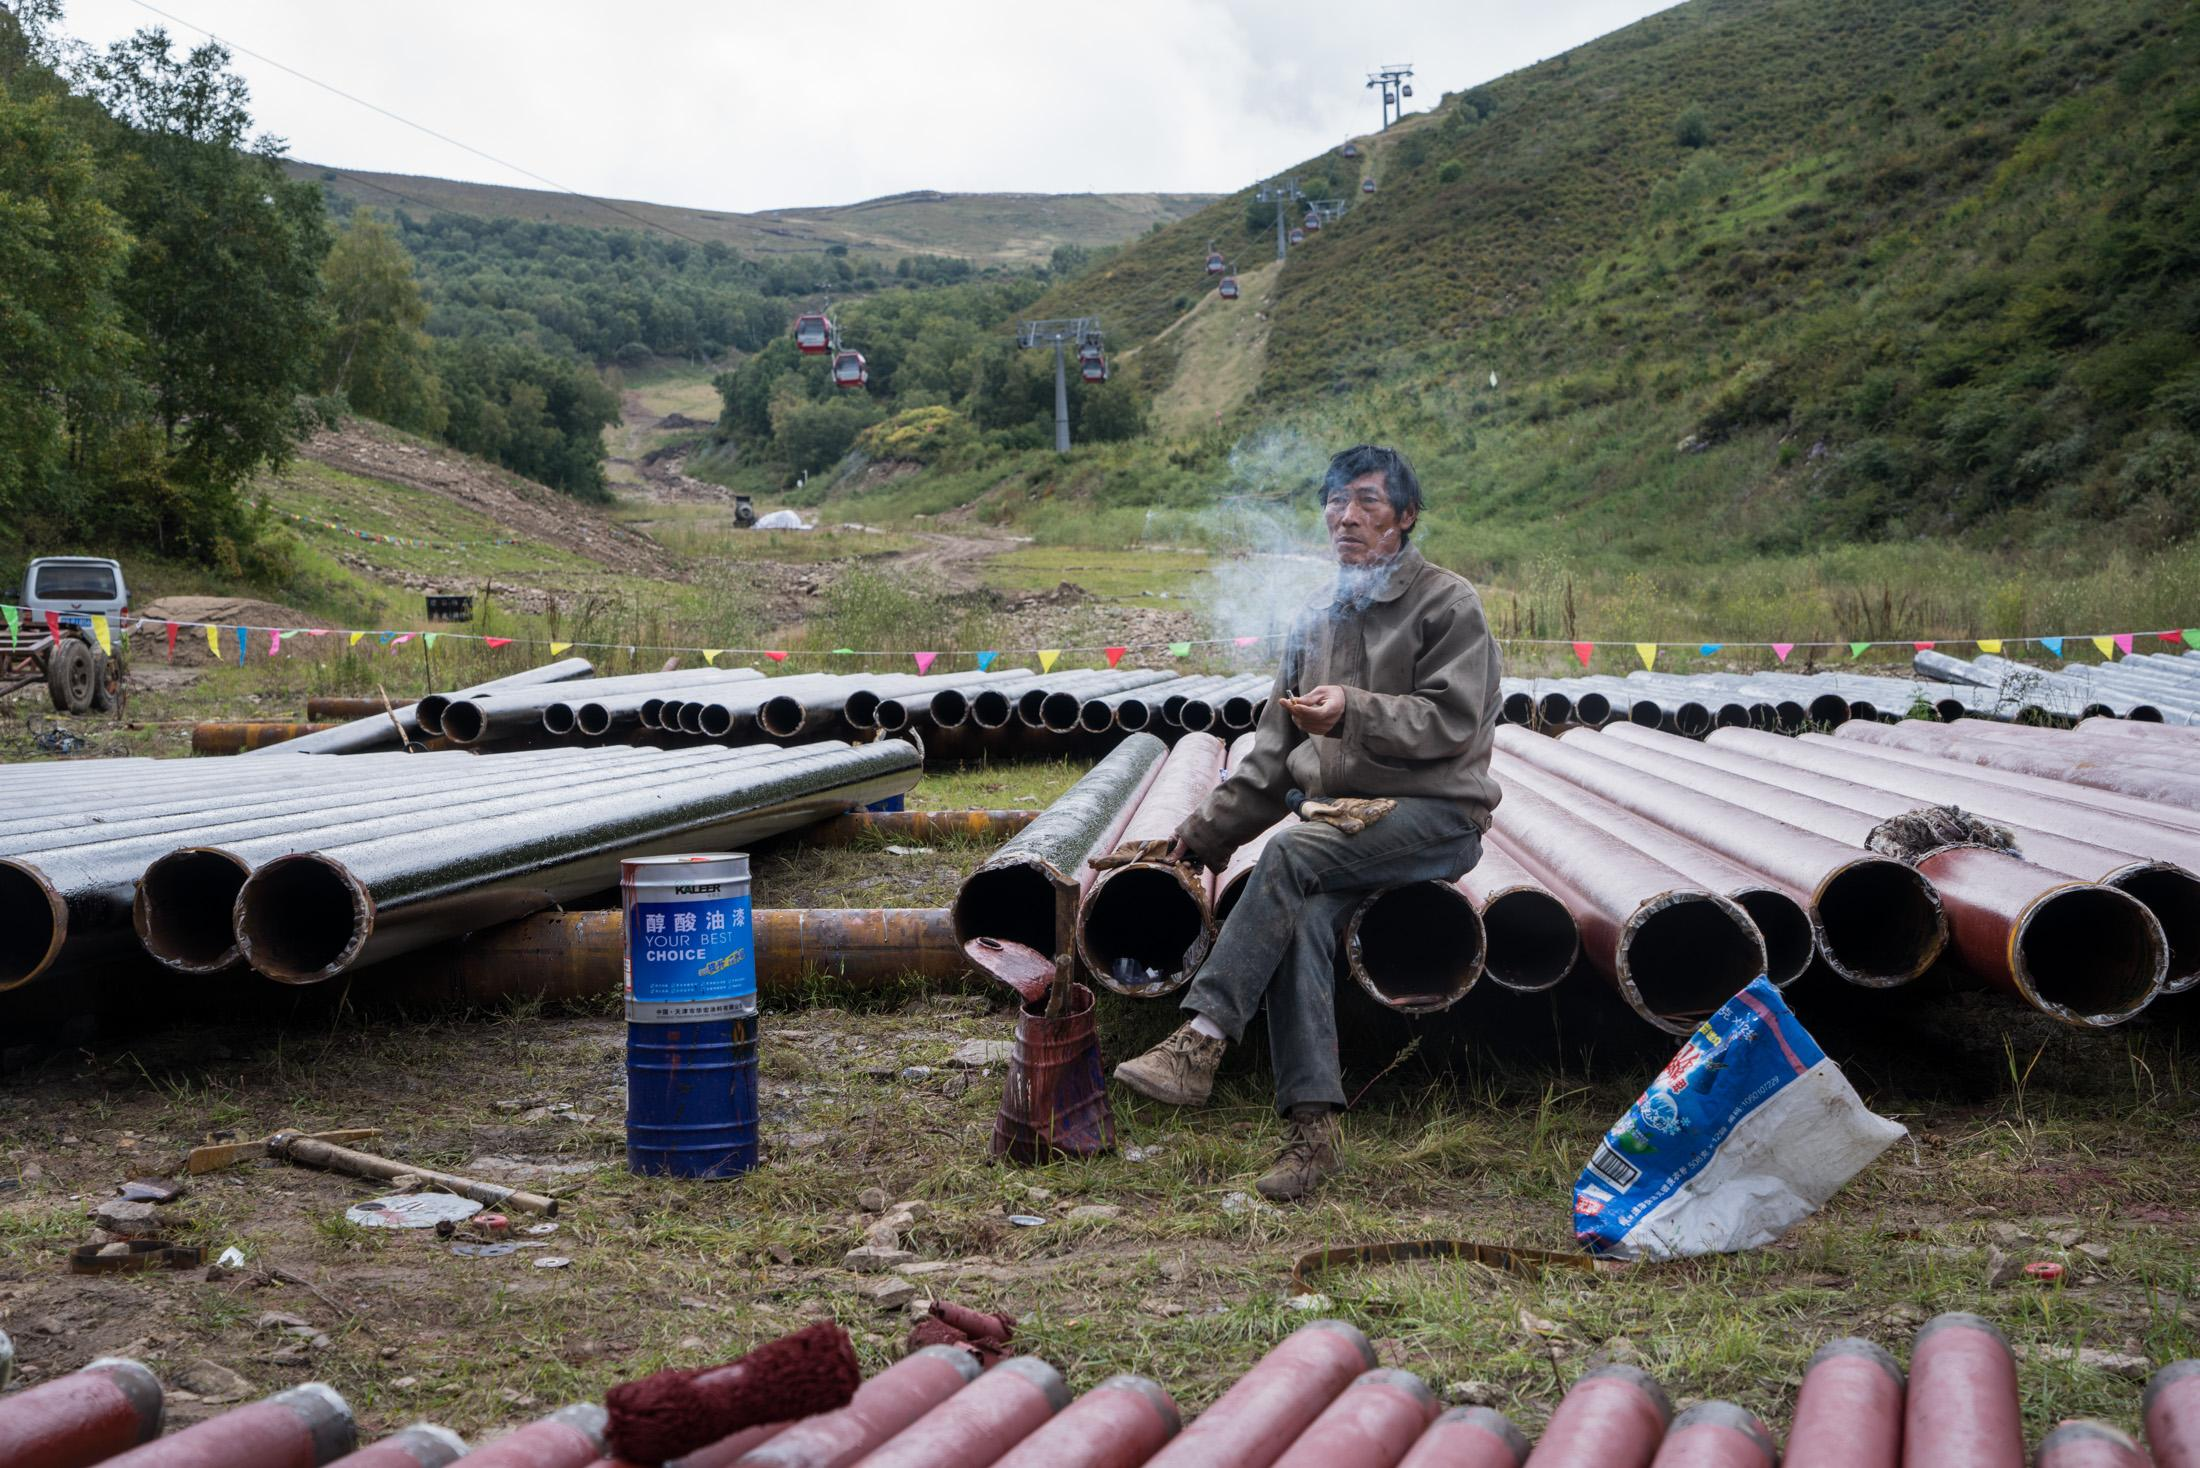 A worker takes a cigarette break at Genting Skiing Resort, Chongli, China in September 2015.